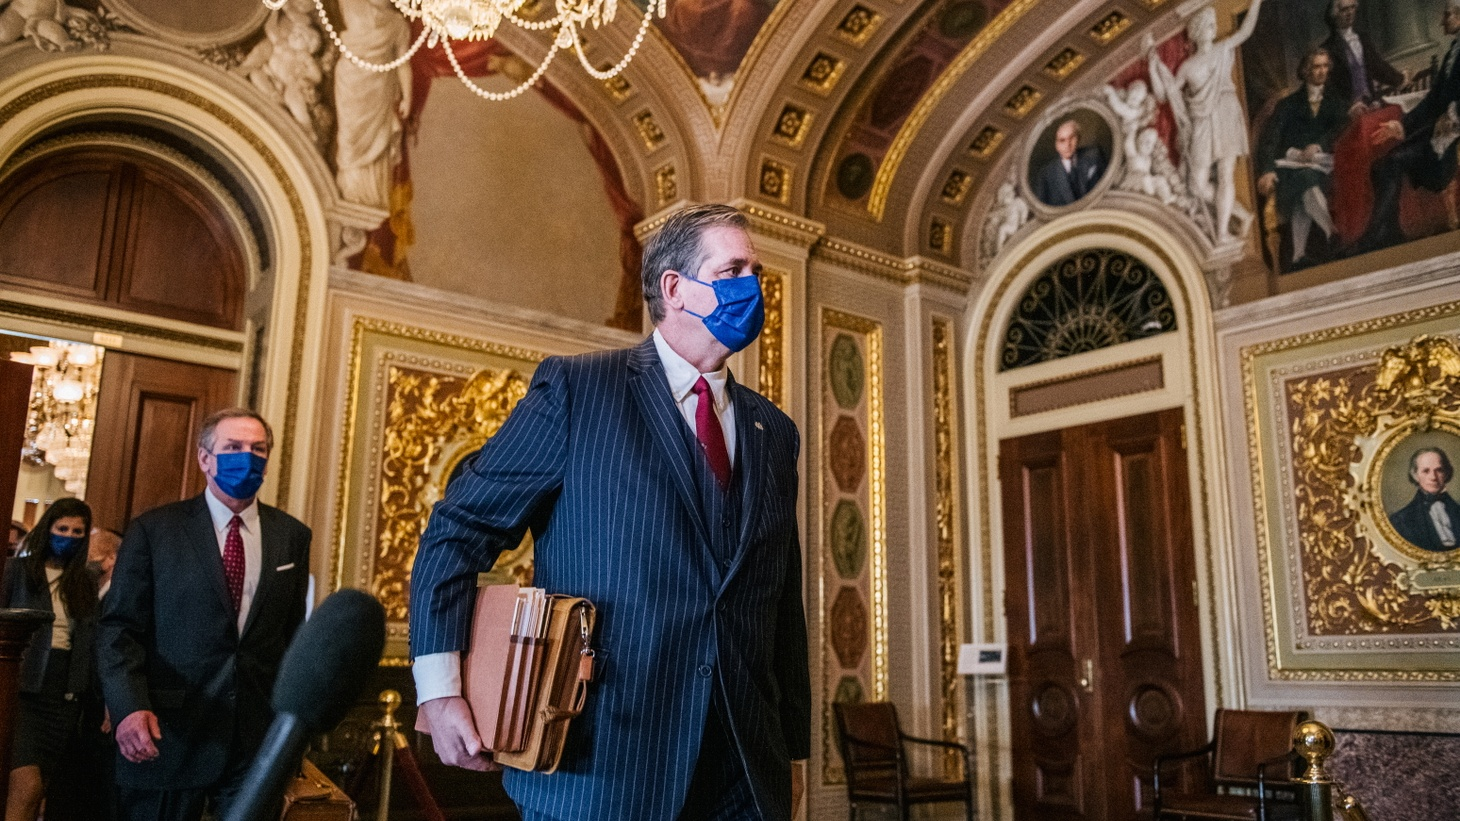 Attorney Bruce Castor walks through The Senate Reception Room ahead of the second day of former U.S. President Donald Trump's second impeachment trial in Washington, U.S., February 10, 2021.